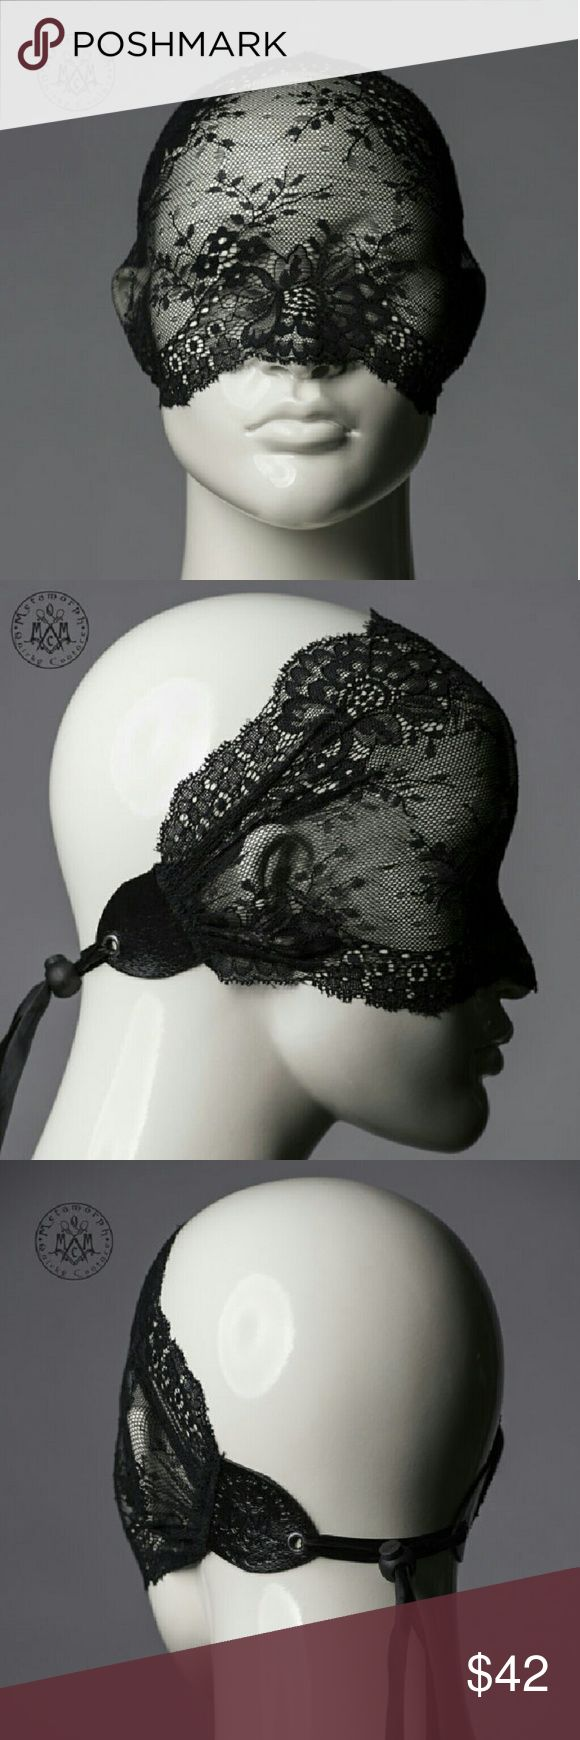 Halloween Black Lace Masquerade Mask Full/Half Get noticed incognito with this unique & versatile lace mask.   worn only once for masquerade party no tears/rips  handmade in Denmark/Europe highest quality lace mask found on market perfect for Halloween  Works as a full face veil, half face mask, or wide lace headband turban. You can see through the fabric well. Made of beautiful stretchy lace, lace is ruched and then thoroughly secured with leather. In the back the mask can be conveniently…